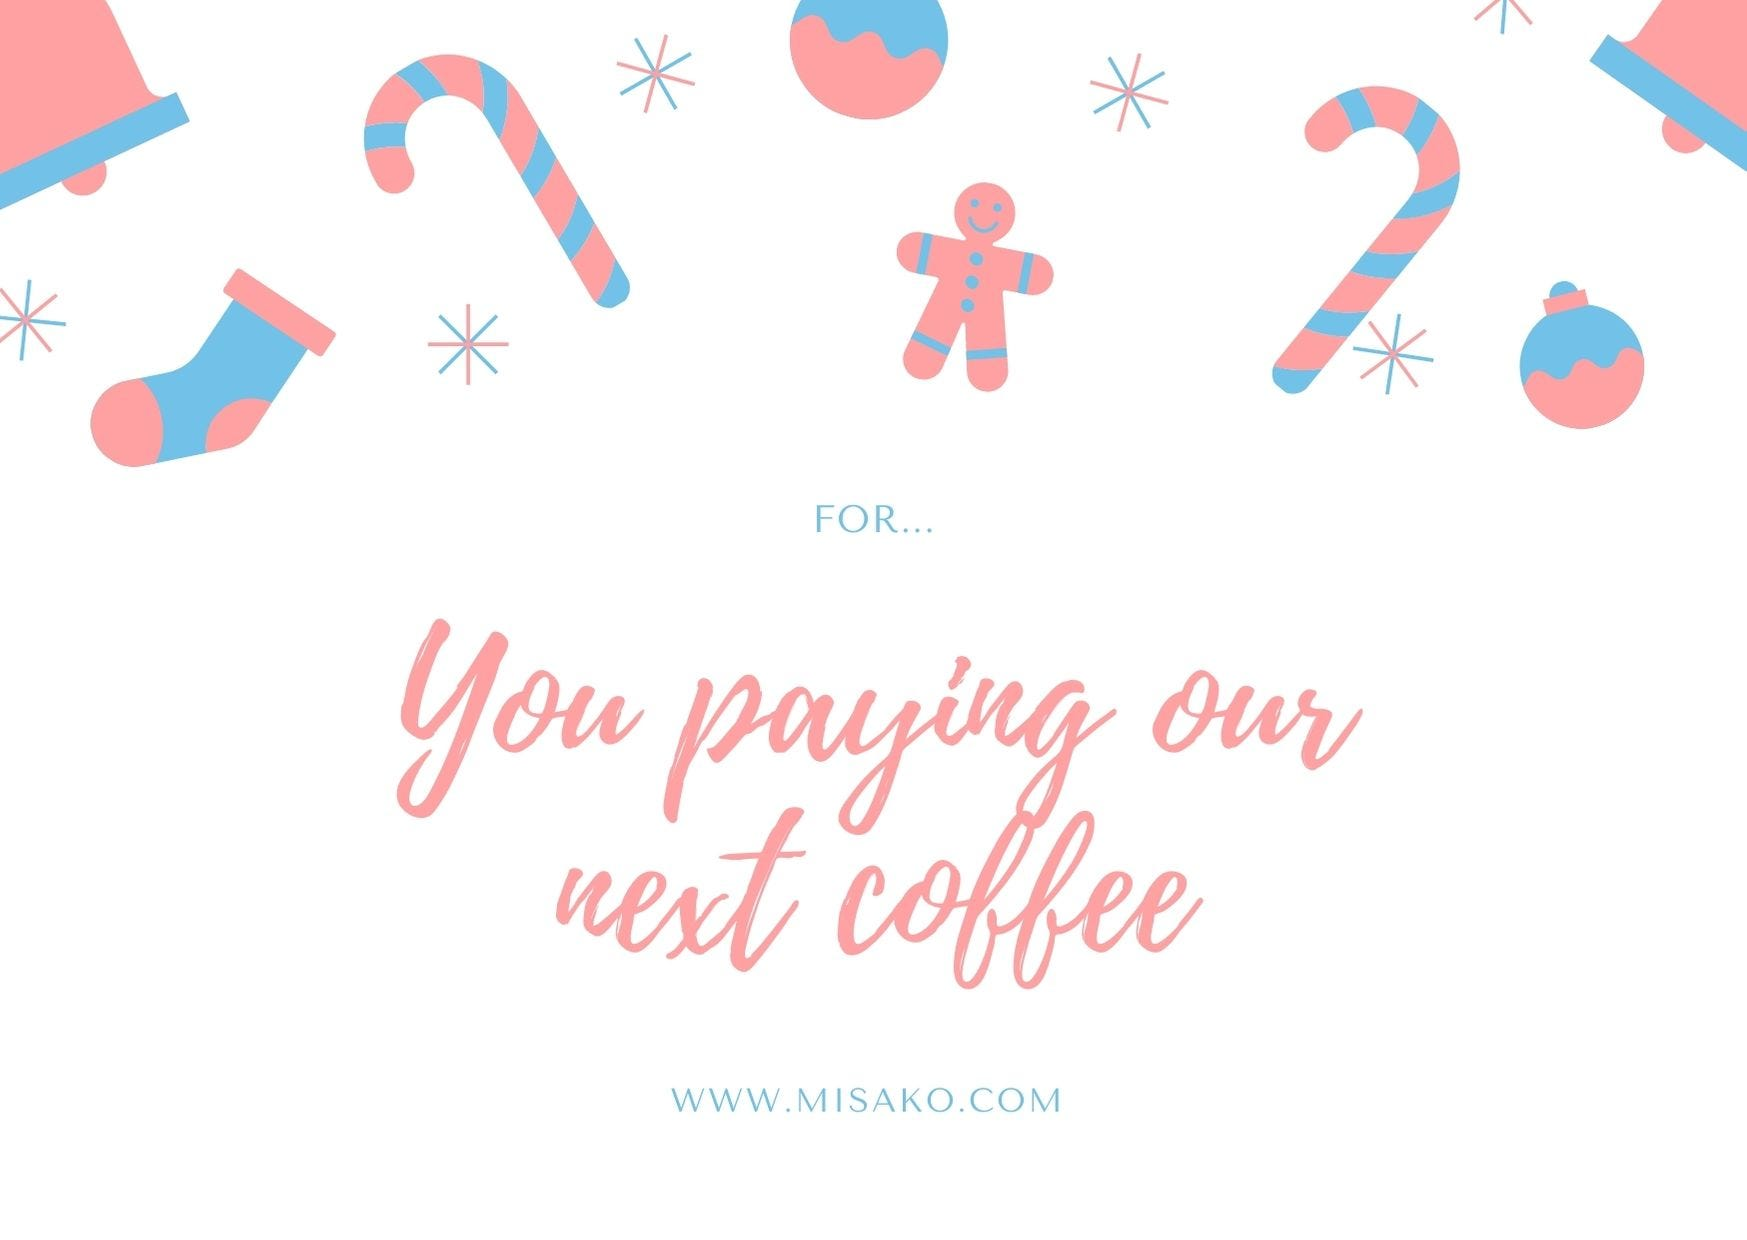 Card to print 2: For you paying our next coffee